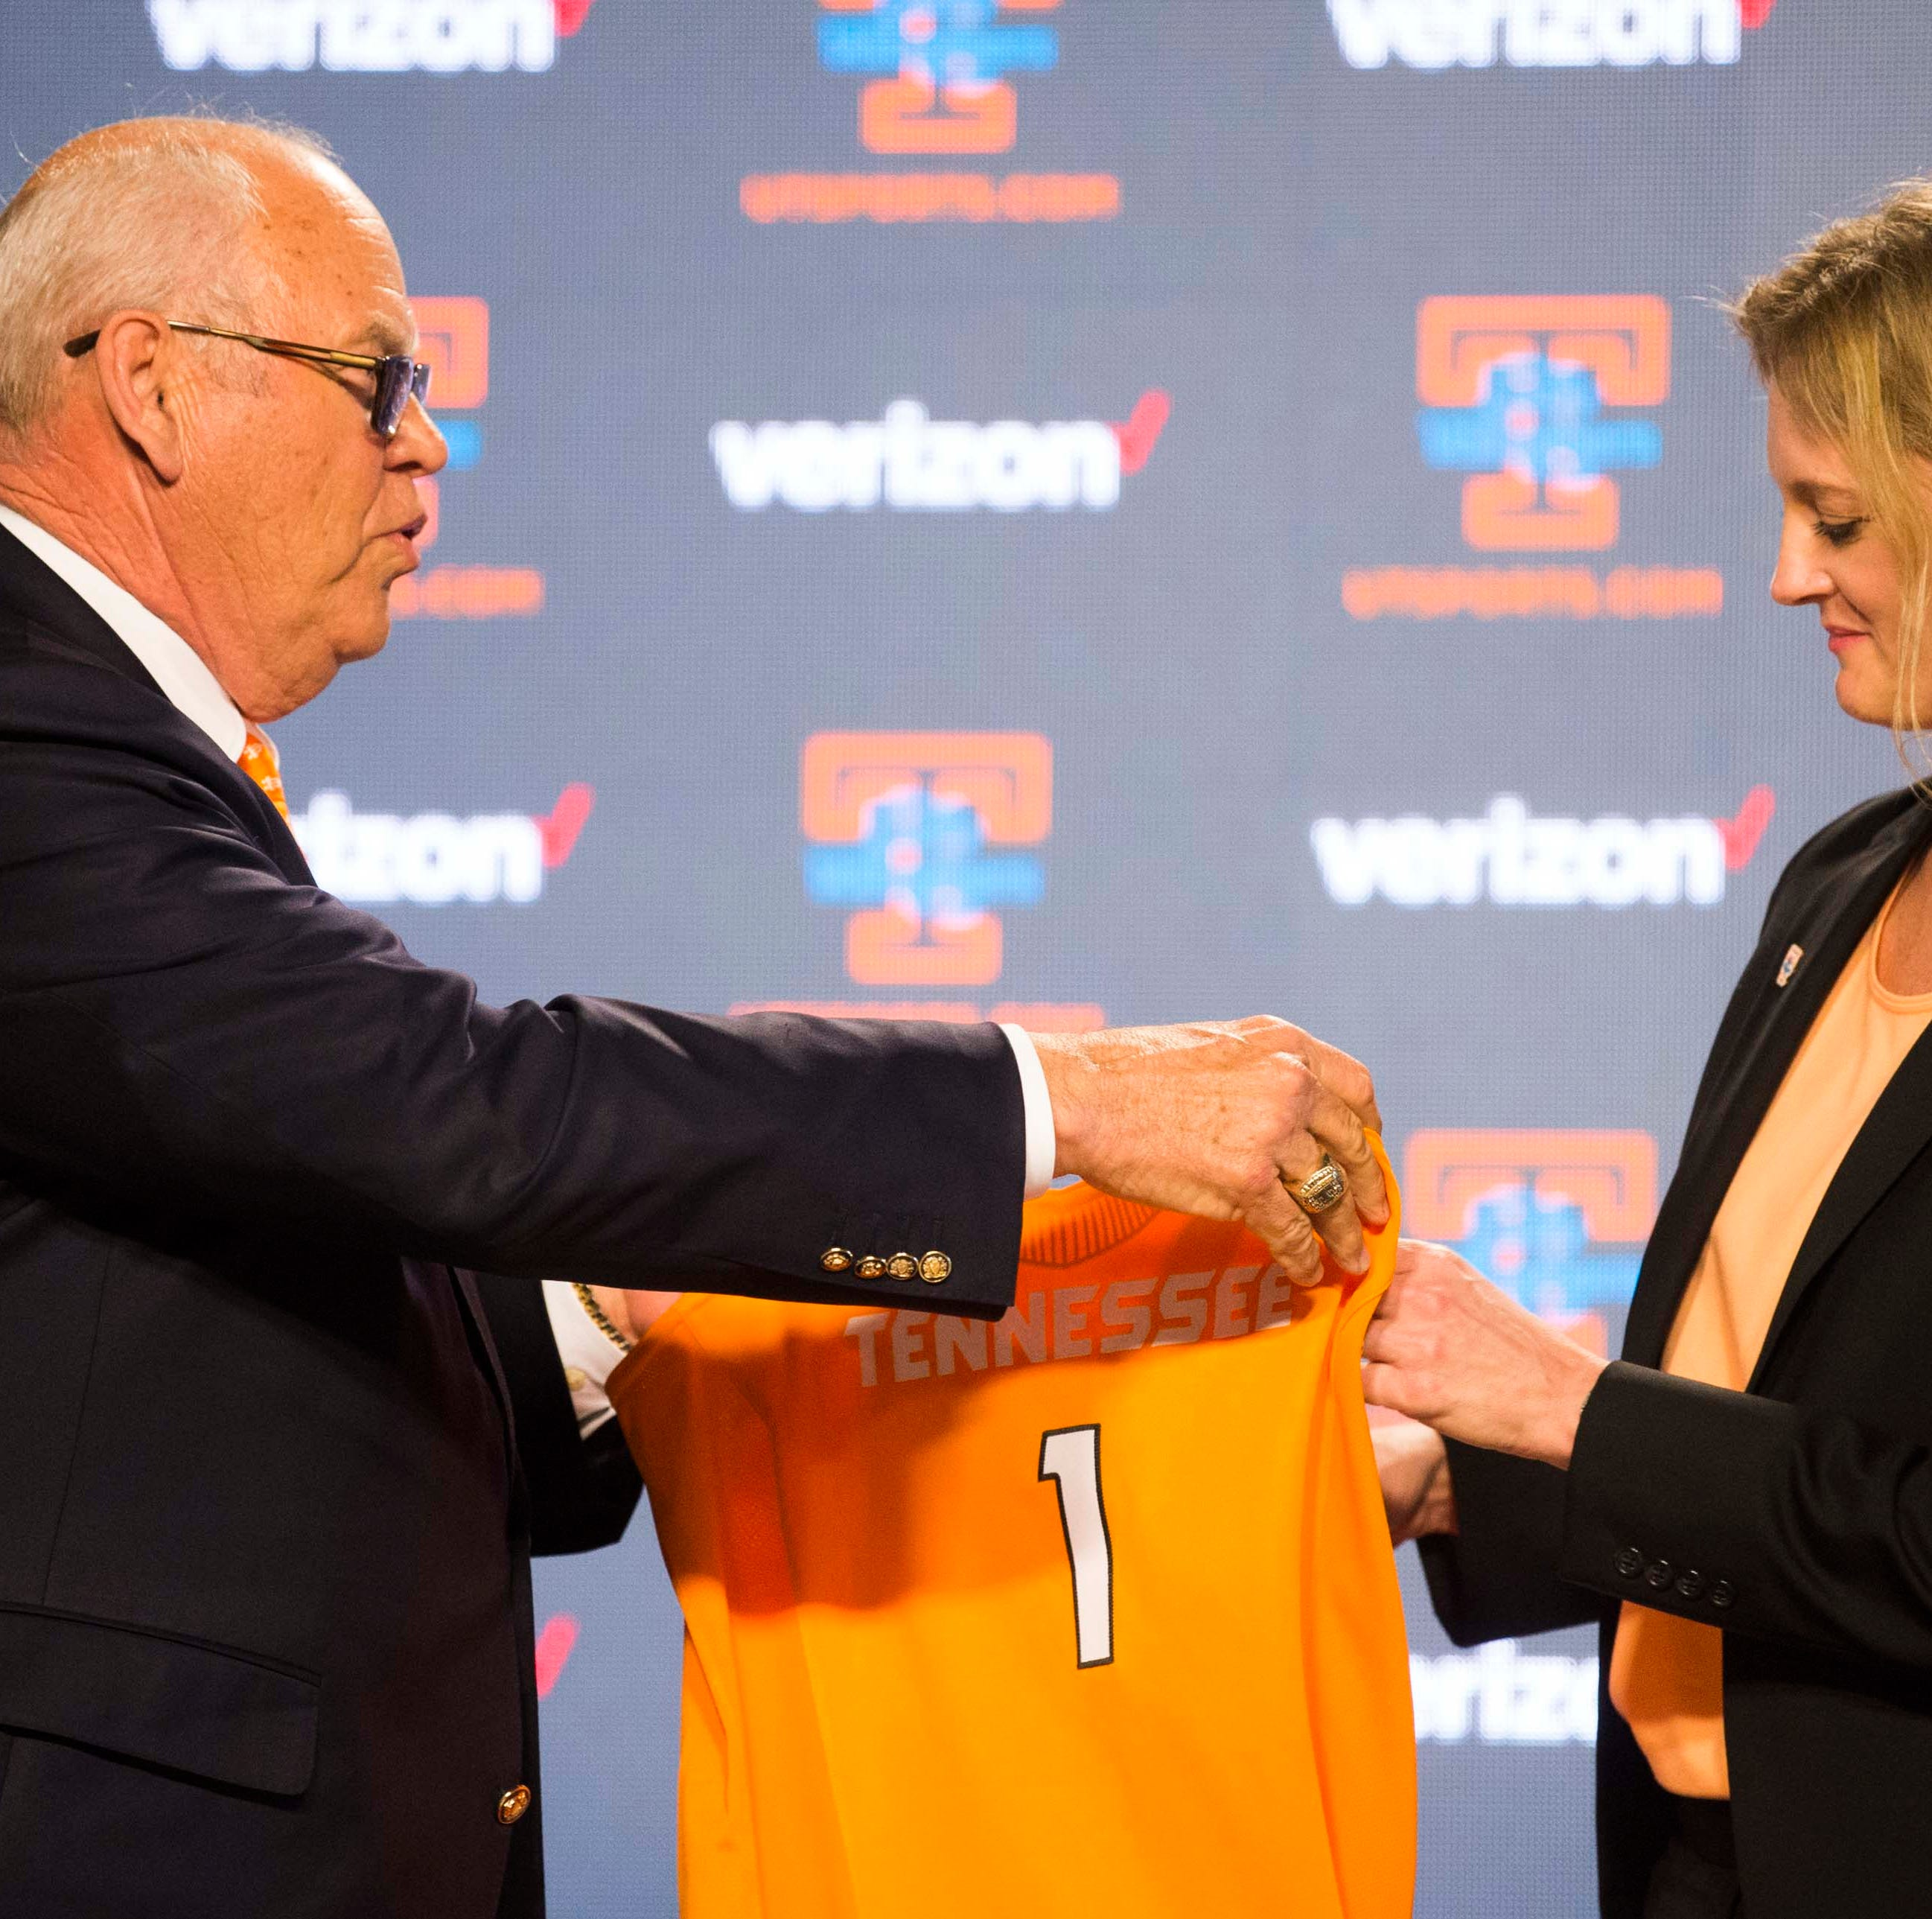 Here are the terms of Kellie Harper's deal with Tennessee Lady Vols